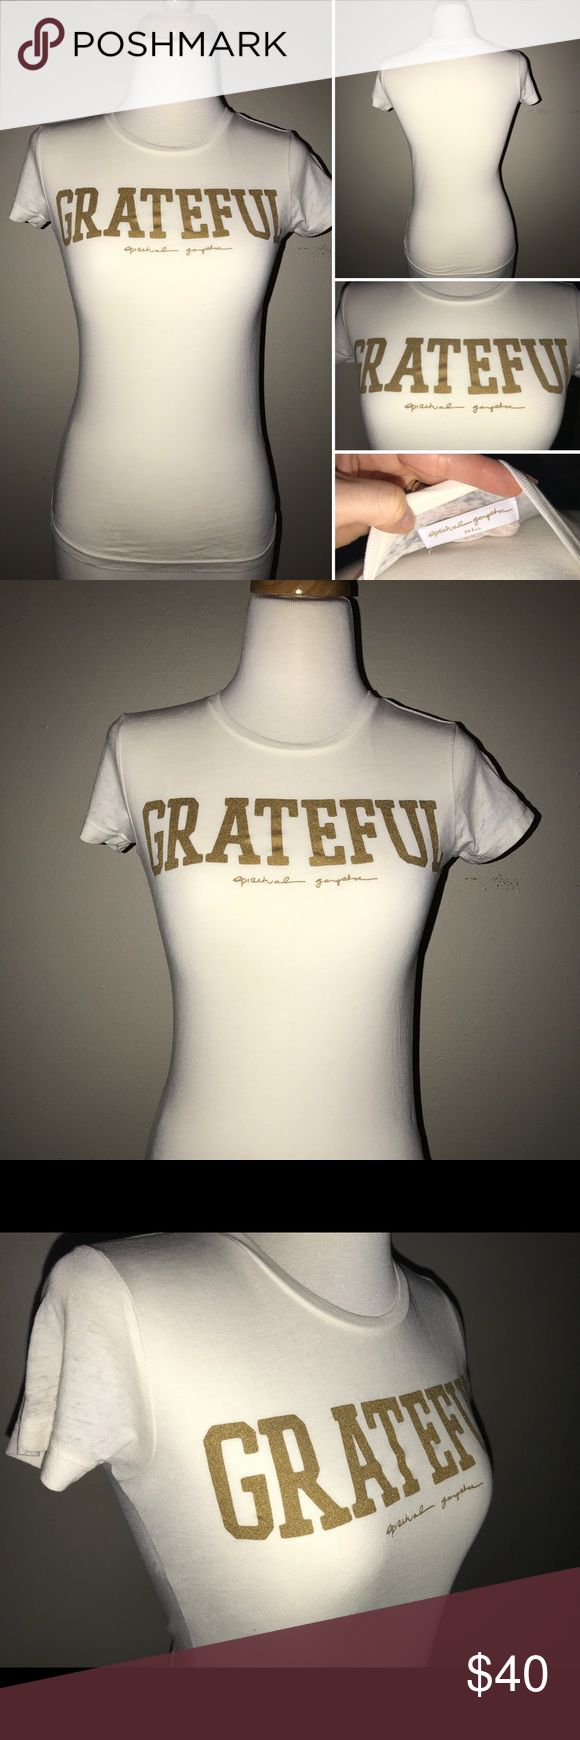 Spiritual Gangster Grateful Burnout Tee Shirt NWOT. This tee is the usual SUPER soft fabric from Spiritual Gangster. I absolutely love it, but it is a tad too small for me. Beautiful cream color with light distressing (burnout style). Never worn. Spiritual Gangster Tops Tees - Short Sleeve